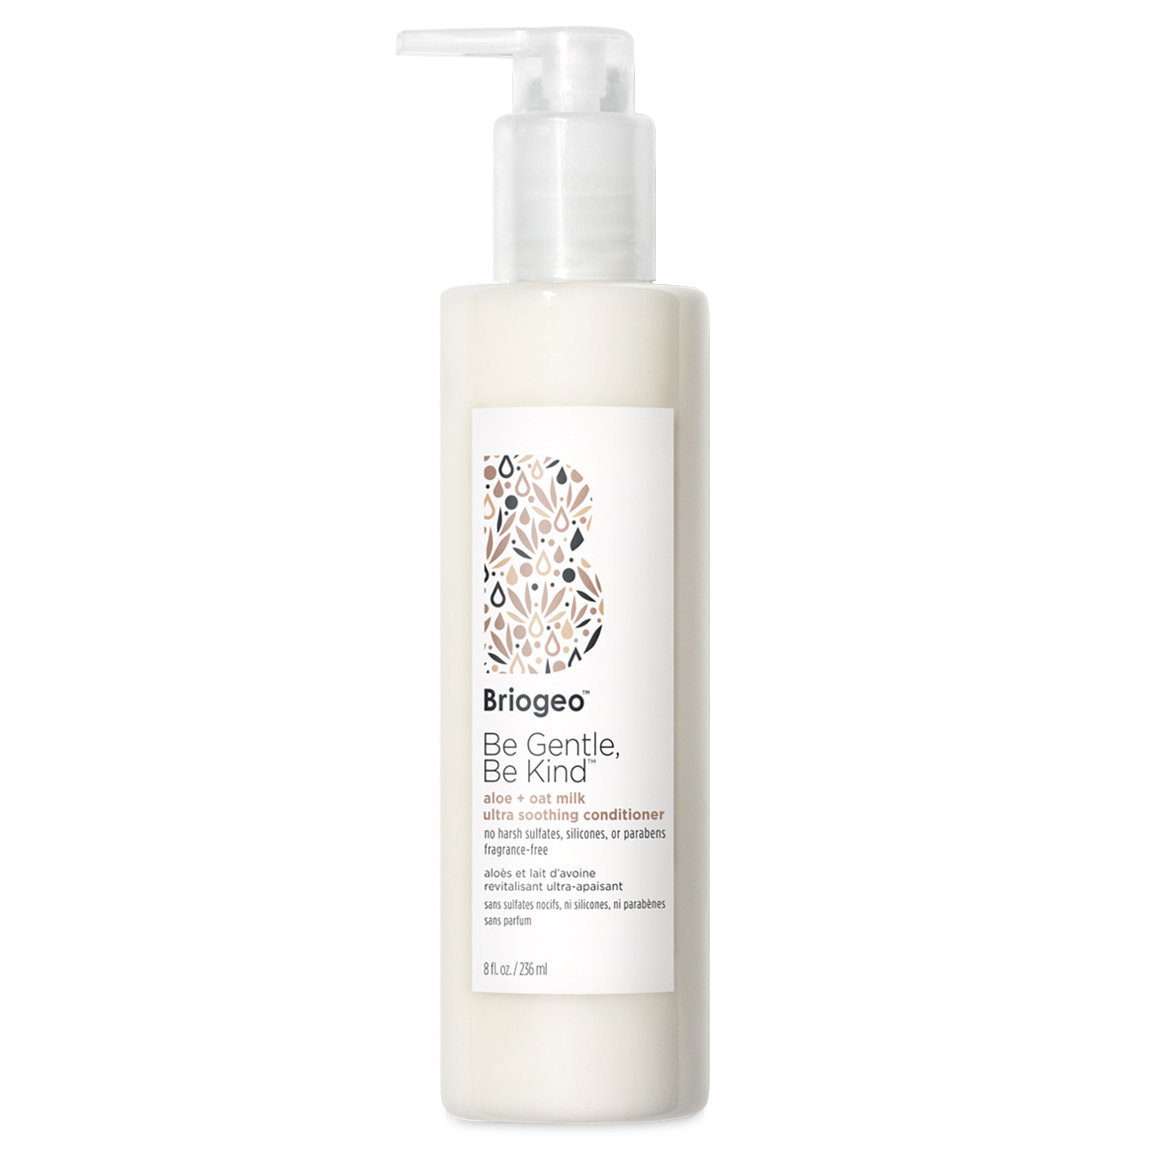 Briogeo Be Gentle, Be Kind Aloe + Oat Milk Ultra Soothing Fragrance-Free Conditioner alternative view 1 - product swatch.